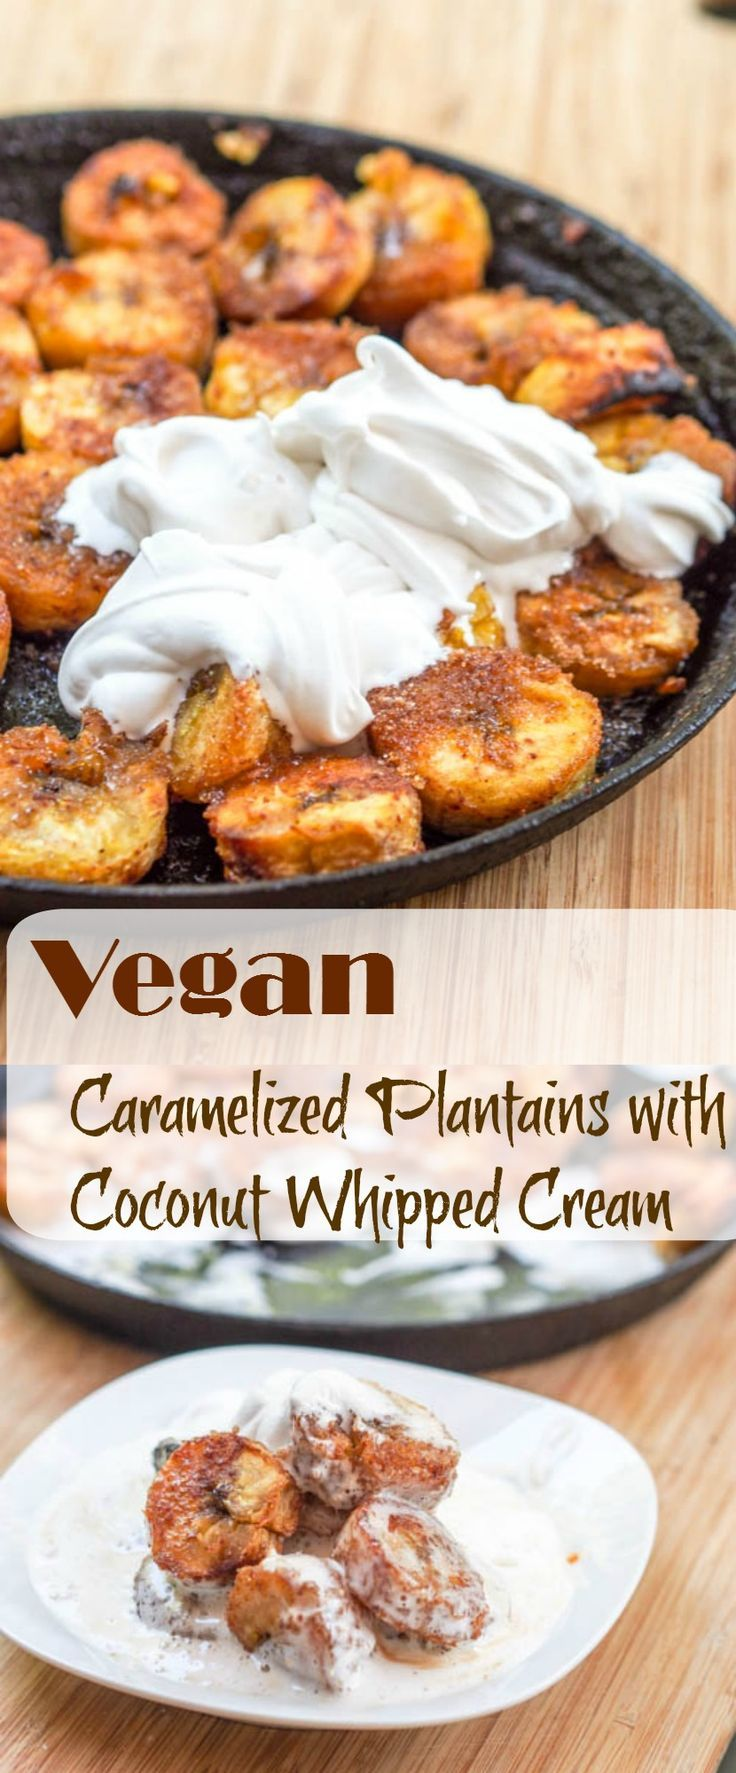 gluten free and vegan dessert made with caramelized plantain rounds ...